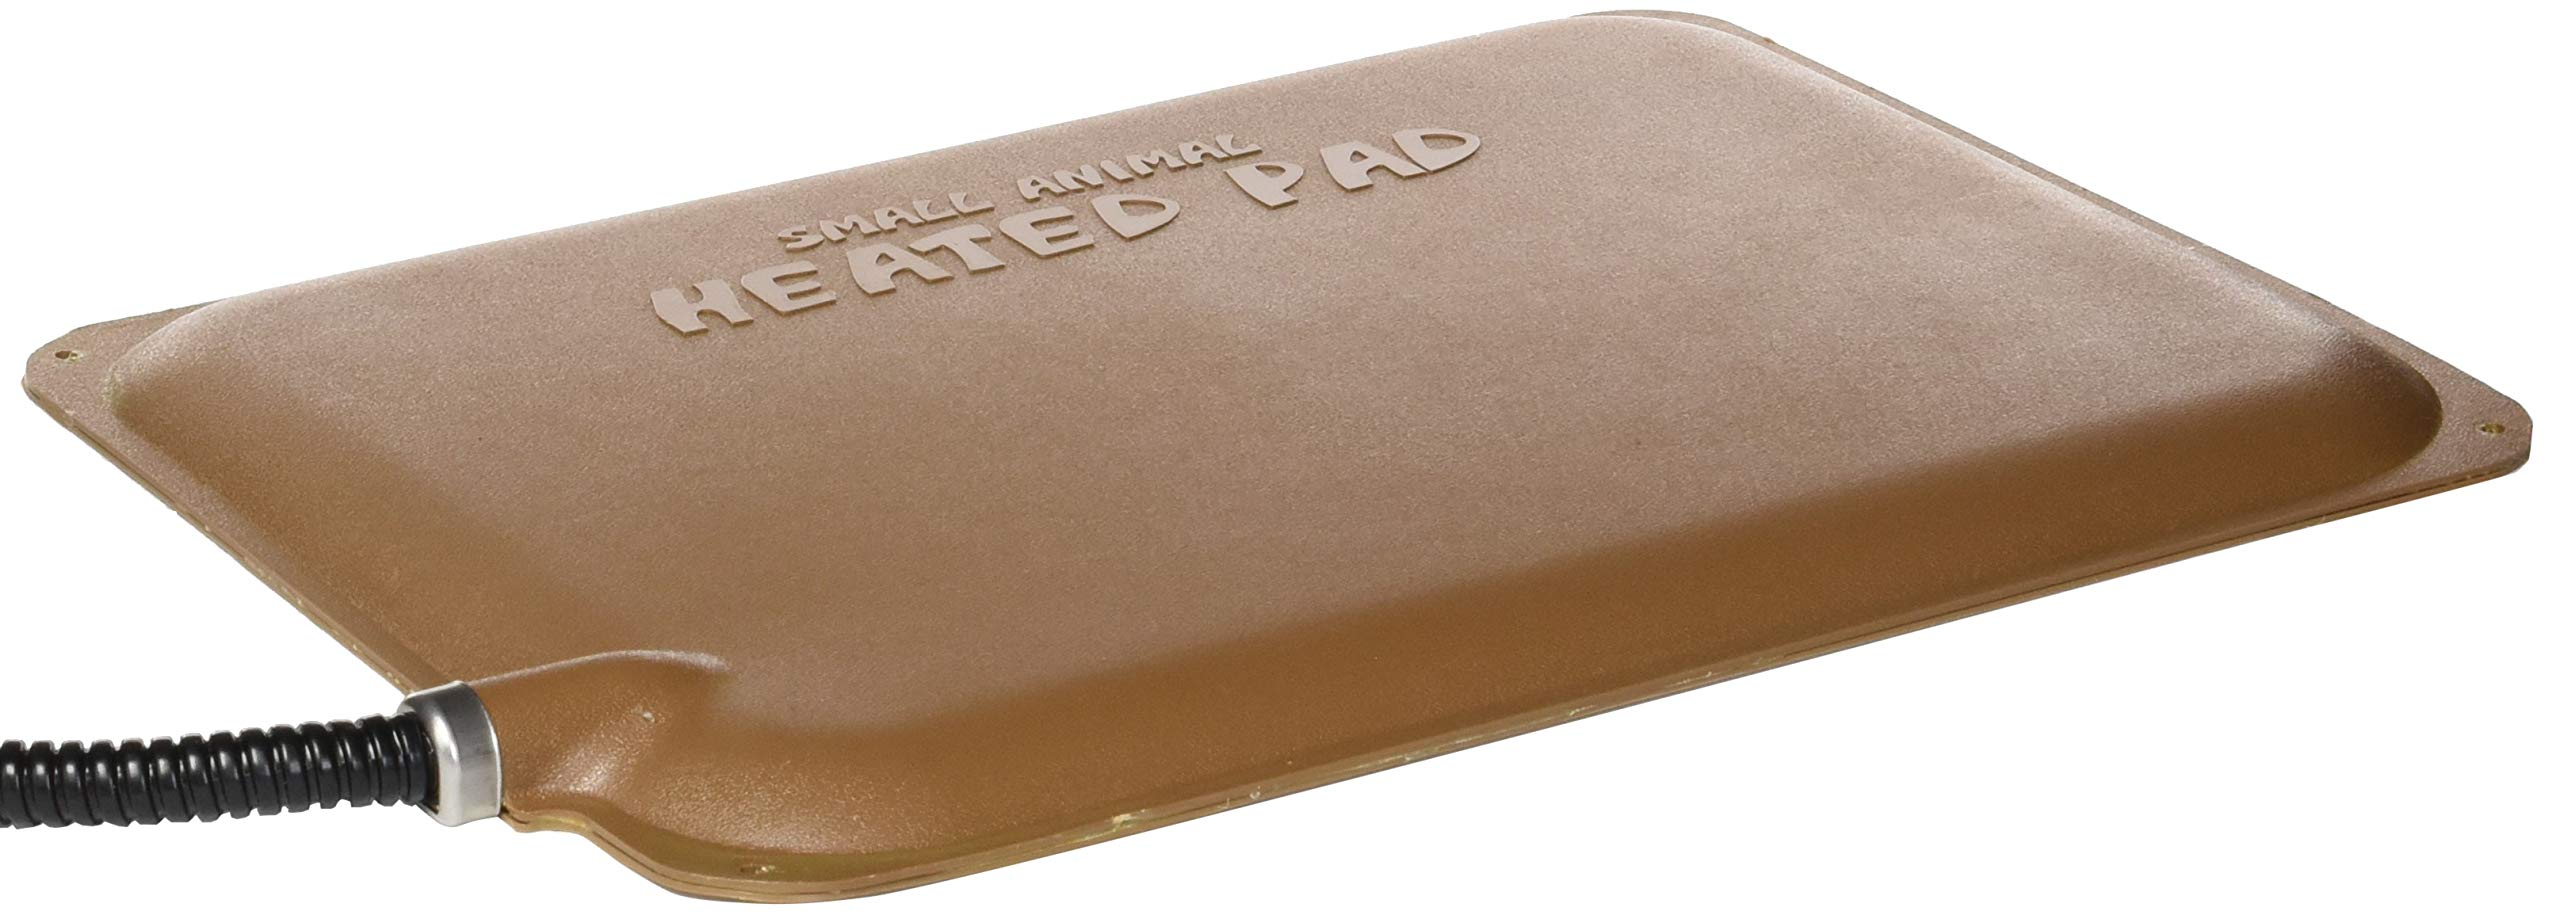 K&H Pet Products Extreme Weather Kitty Pad Petite Tan 9'' x 12'' 25W by K&H PET PRODUCTS